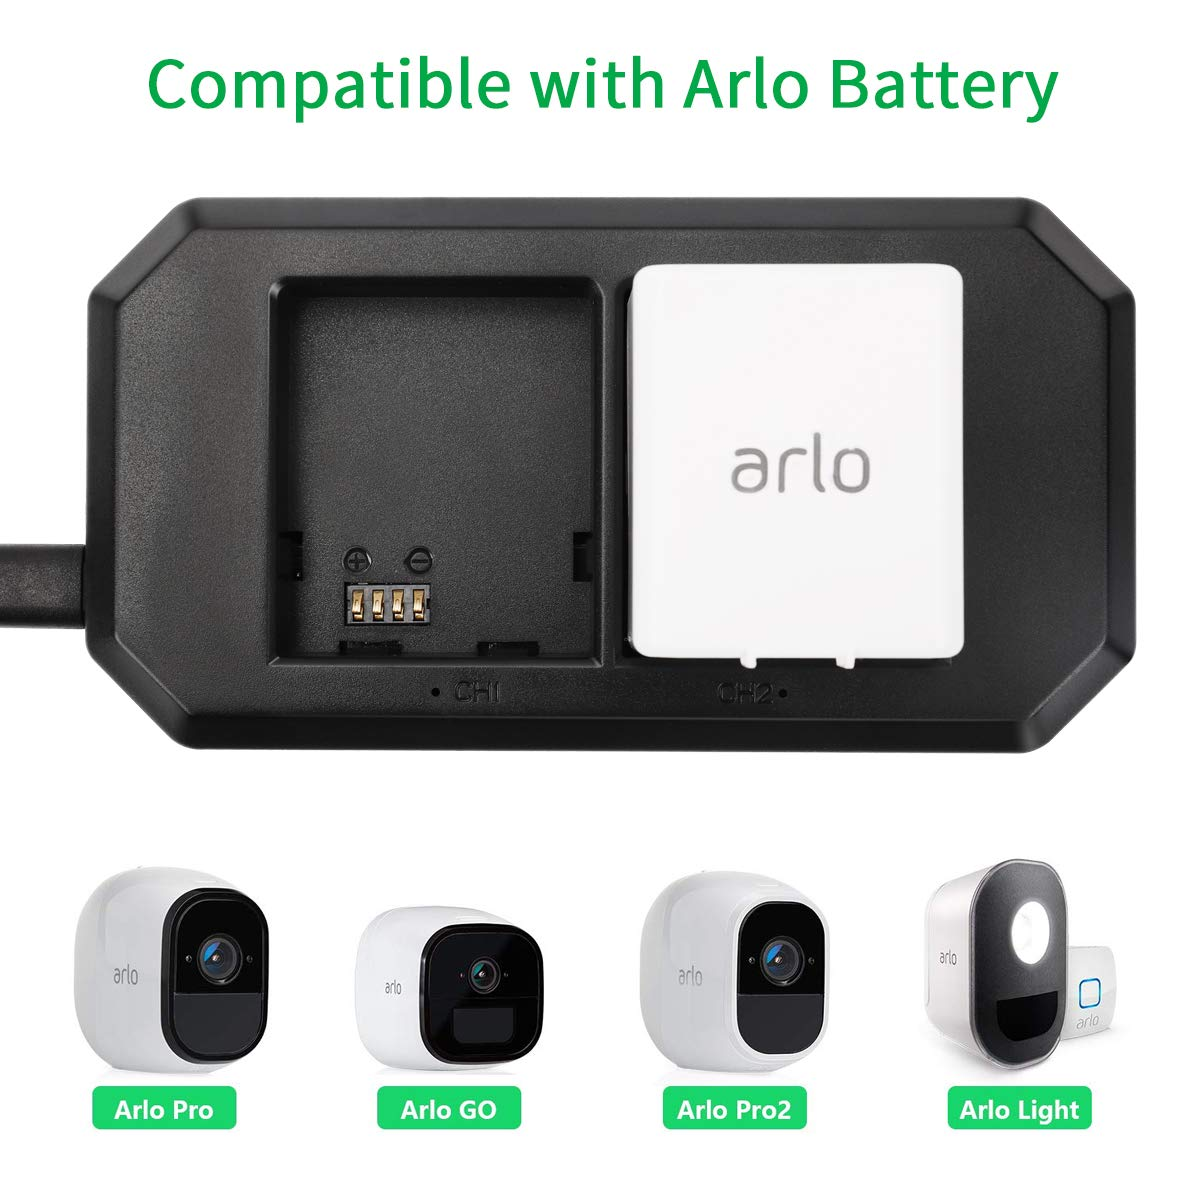 Keenstone 2 Slot Charger for Arlo Rechargable Batteries Compatible with Arlo Pro, Arlo Pro 2, Arlo Go and Arlo Security Light(The Pictured Batteries are not Included)